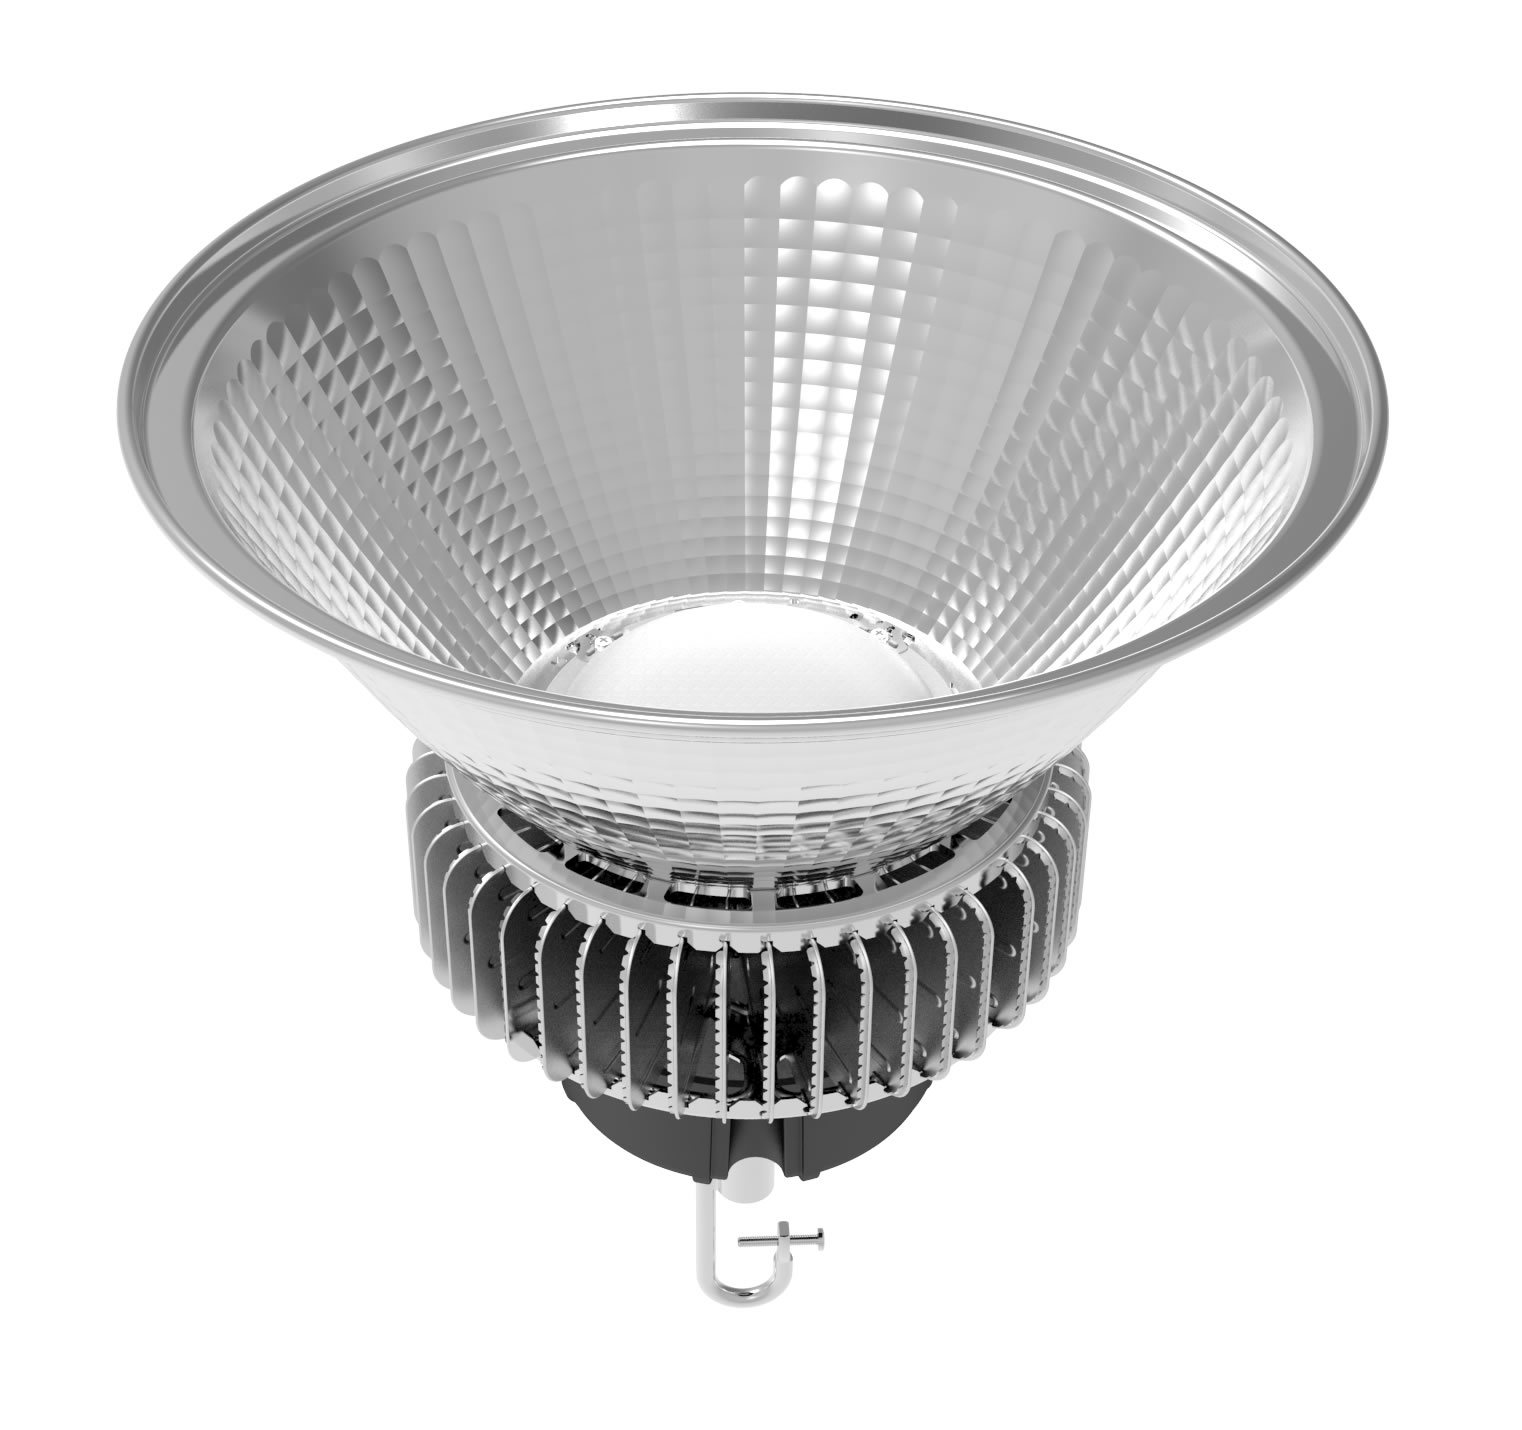 2016 Hot 200W LED High Bay Light